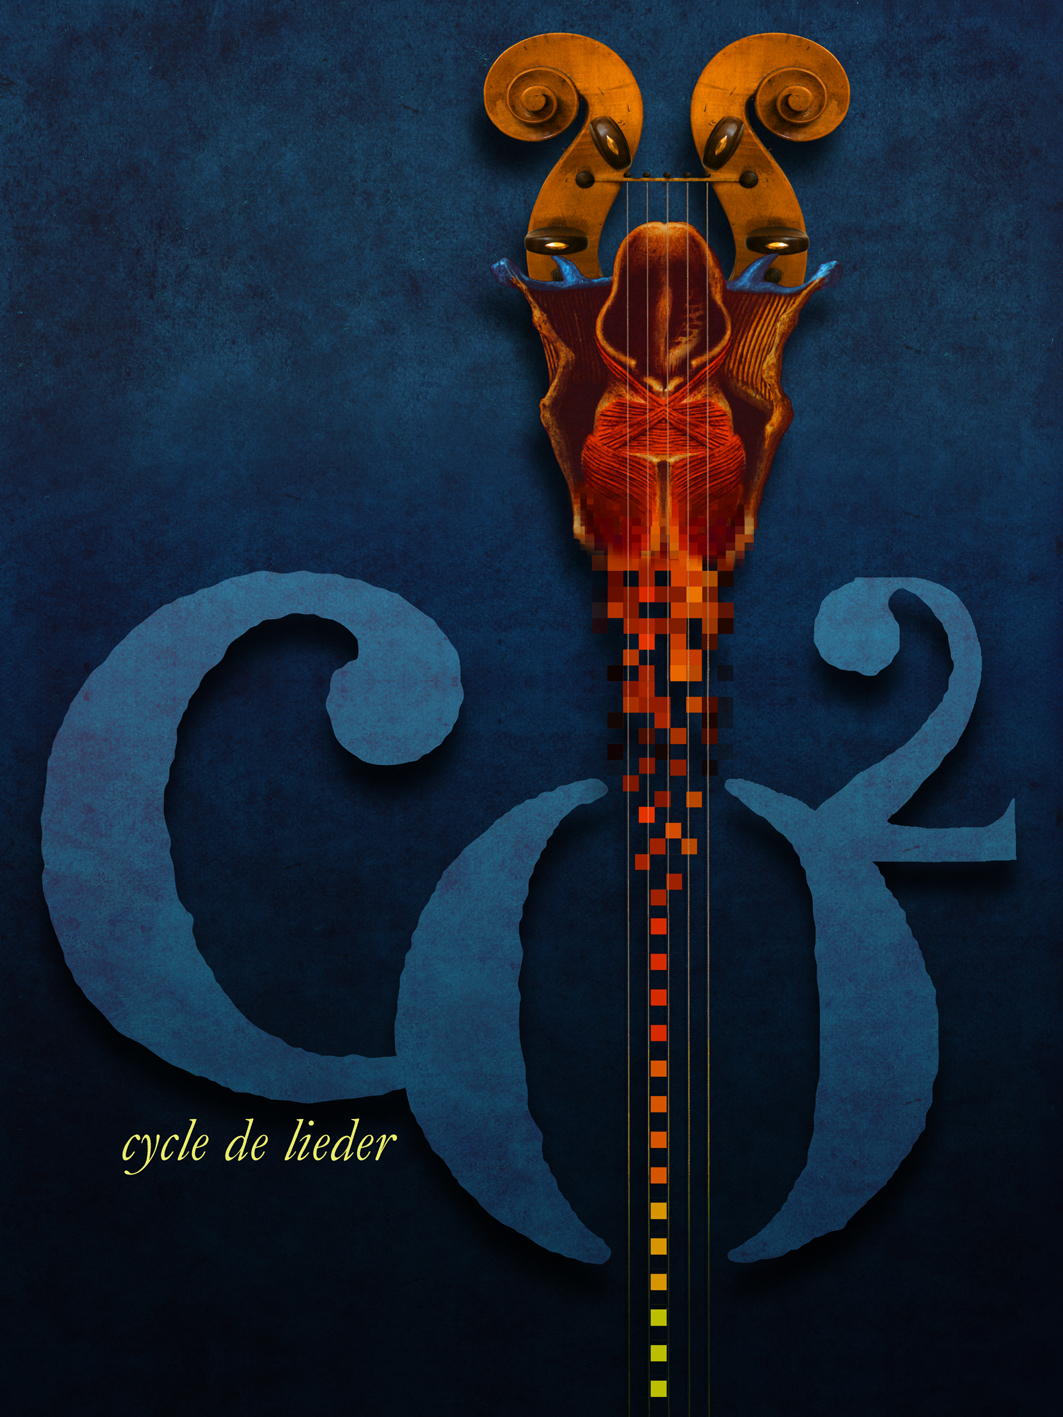 LOGO-CO2-CycledeLieder